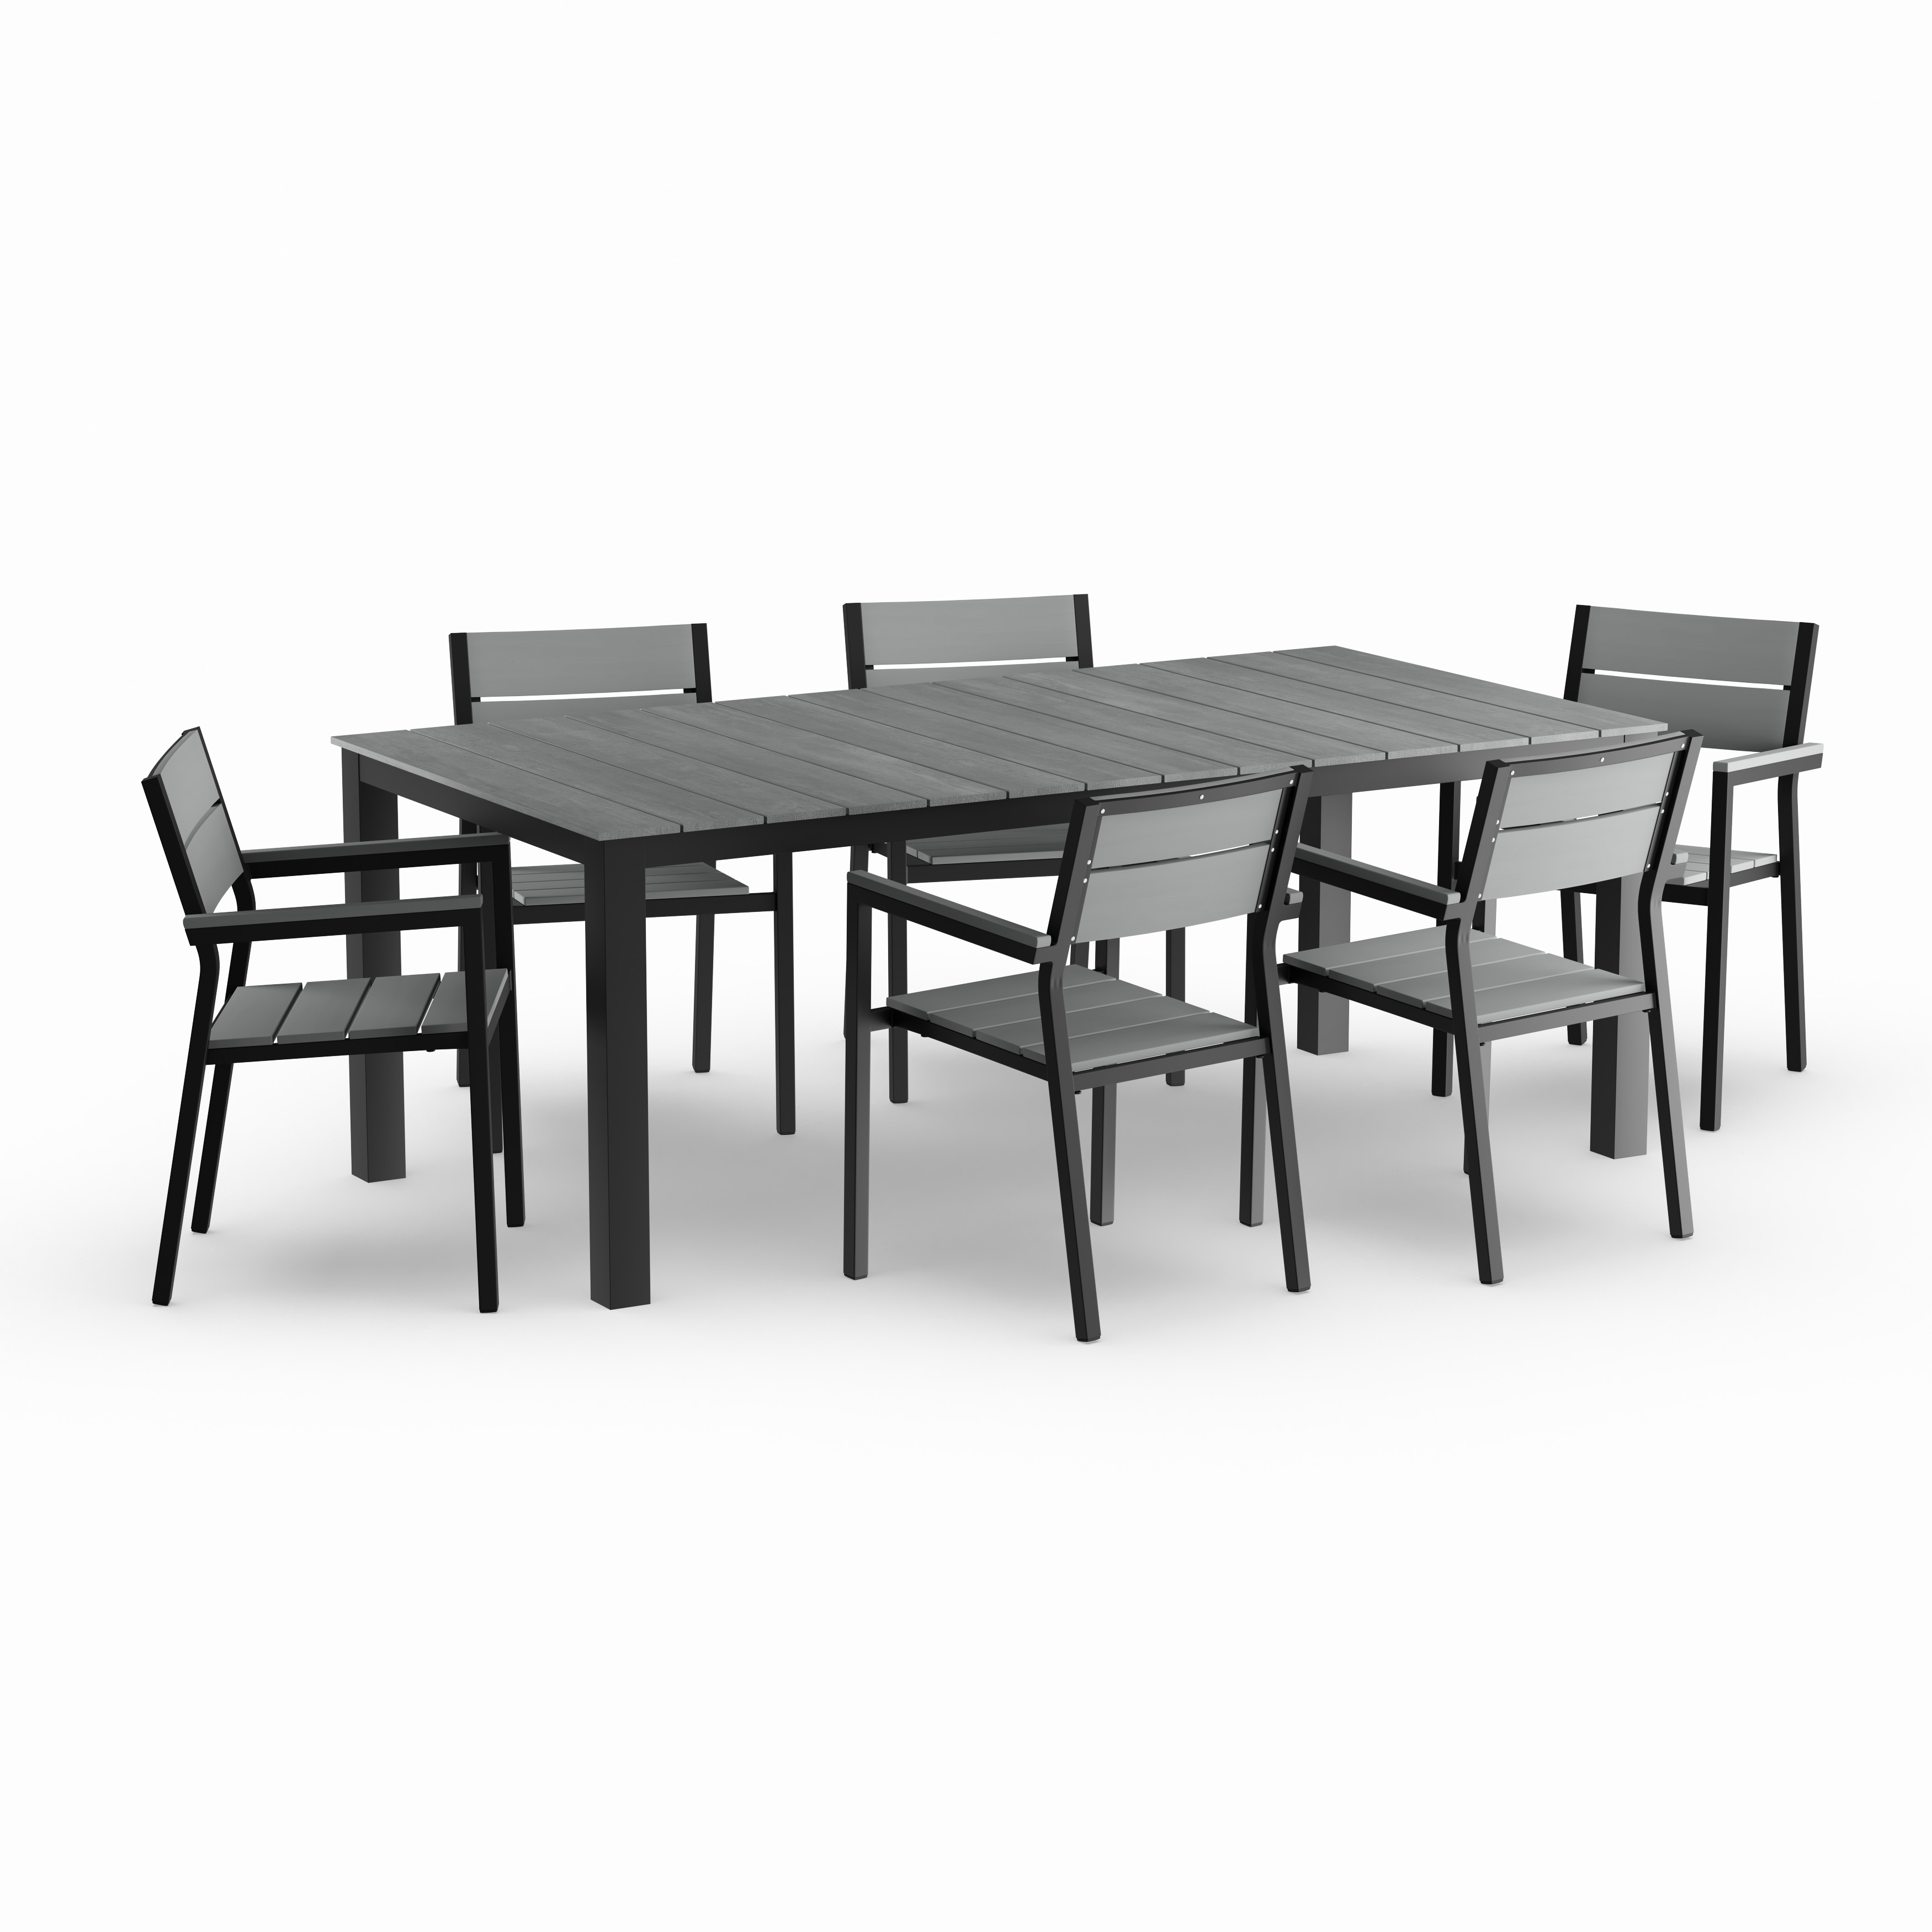 Shop Oliver U0026 James Boggio 7 Piece Outdoor Dining Set   On Sale   Free  Shipping Today   Overstock.com   20831185